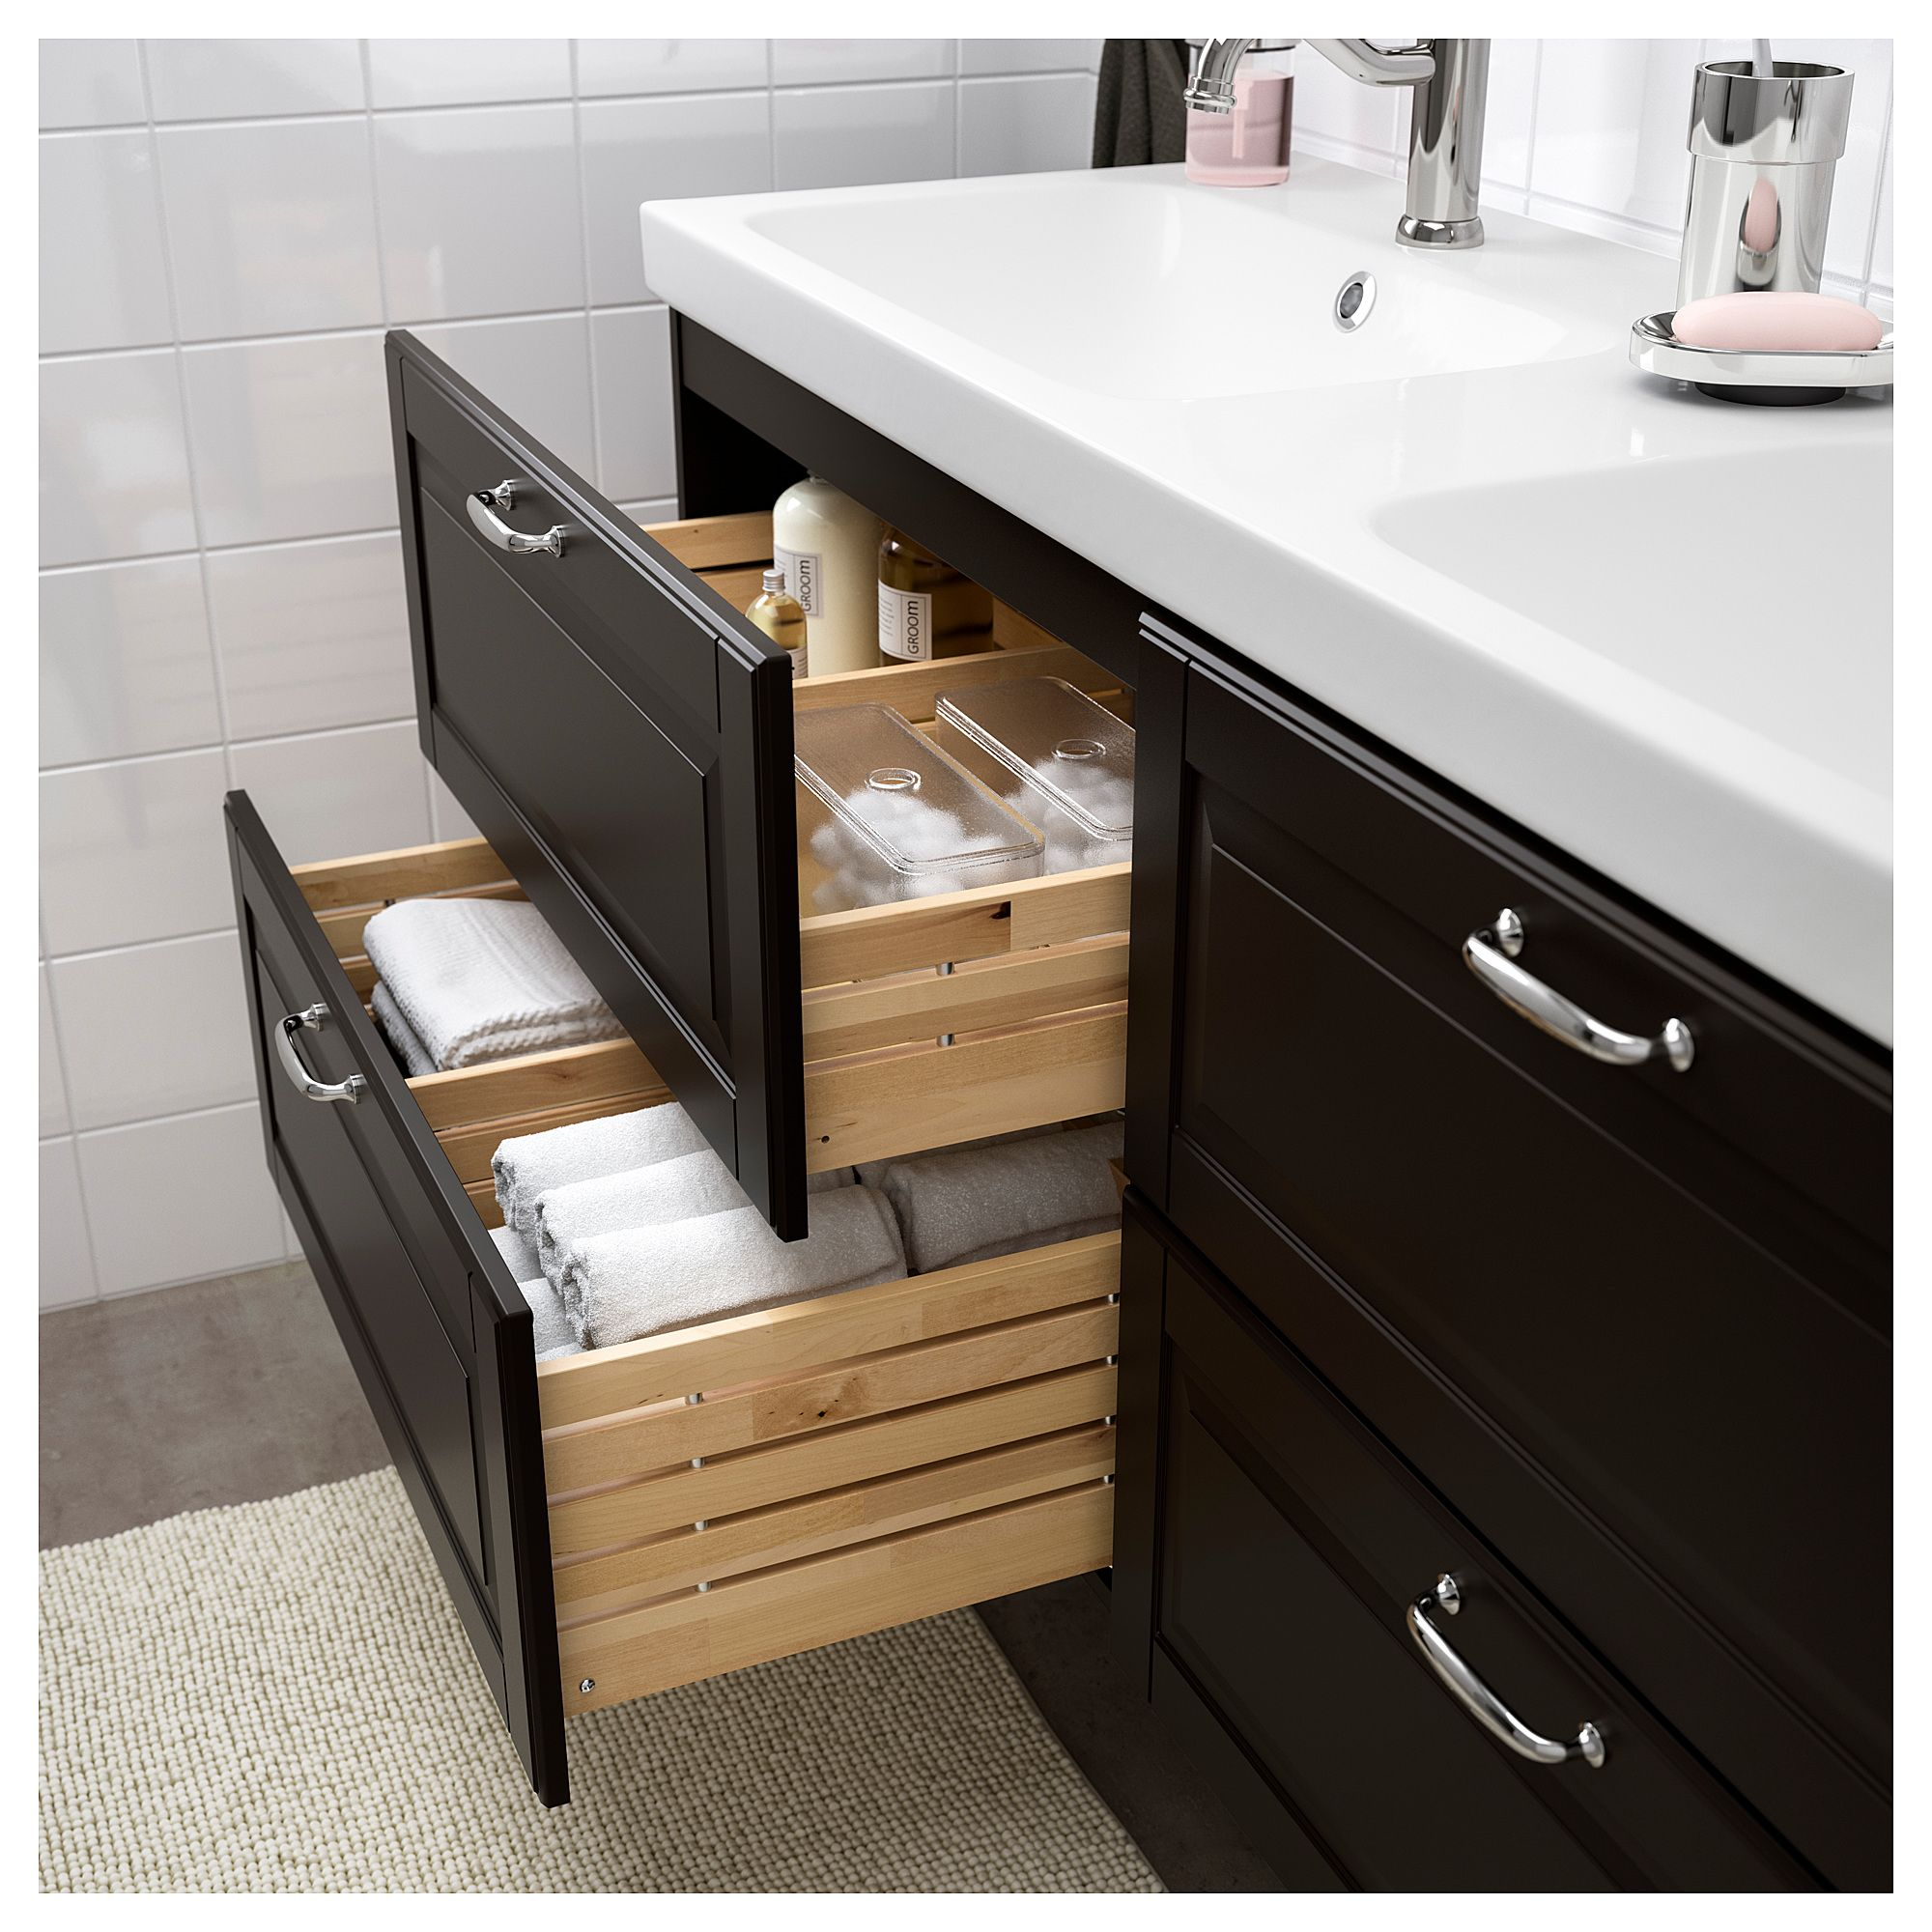 Furniture Home Furnishings Find Your Inspiration Bathroom Sink Cabinets Ikea Godmorgon Sink Cabinet